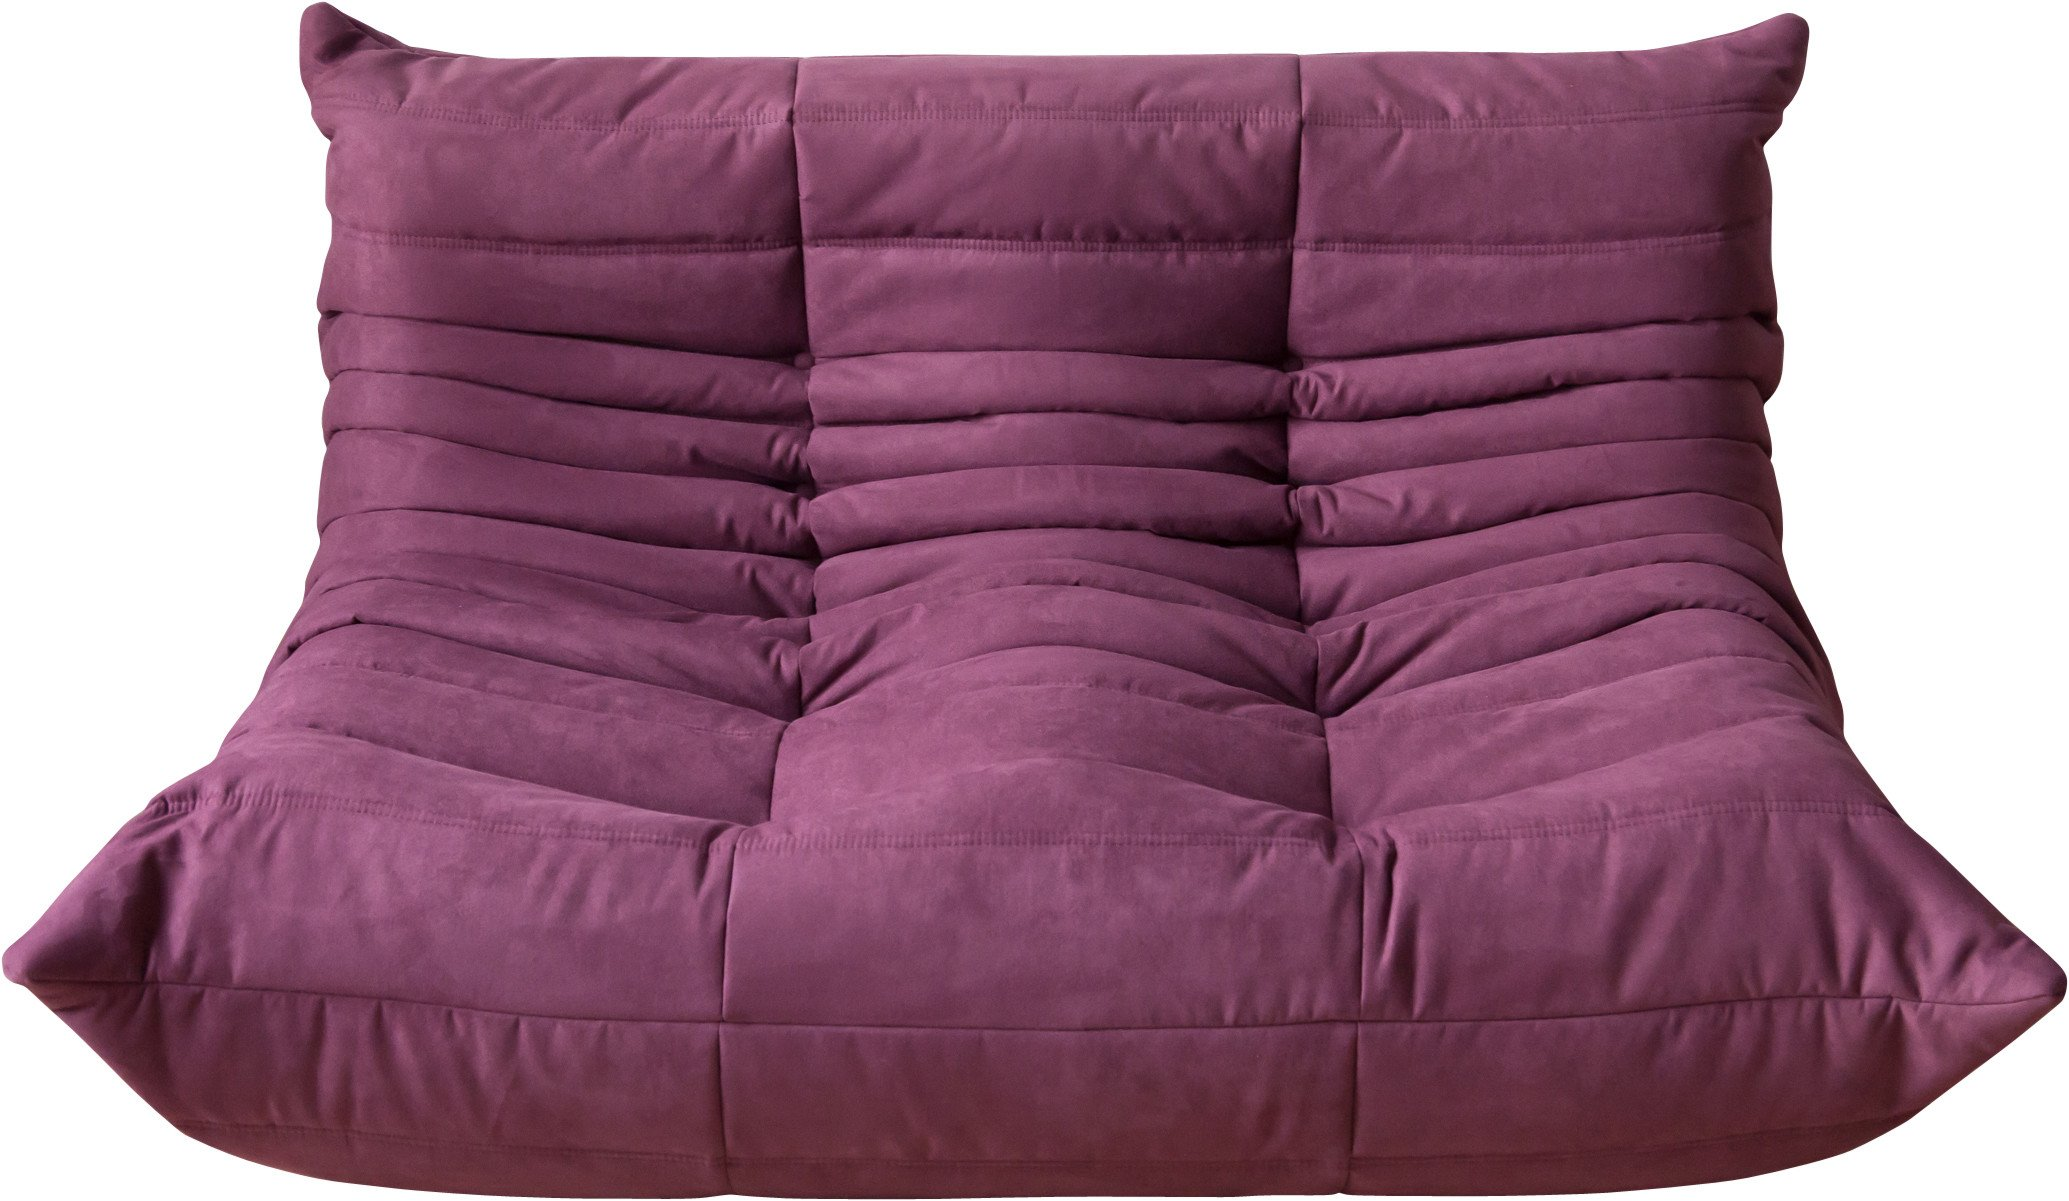 Togo Two-Seat Sofa in Aubergine Microfiber by M. Ducaroy, Ligne Roset, France, 1970s